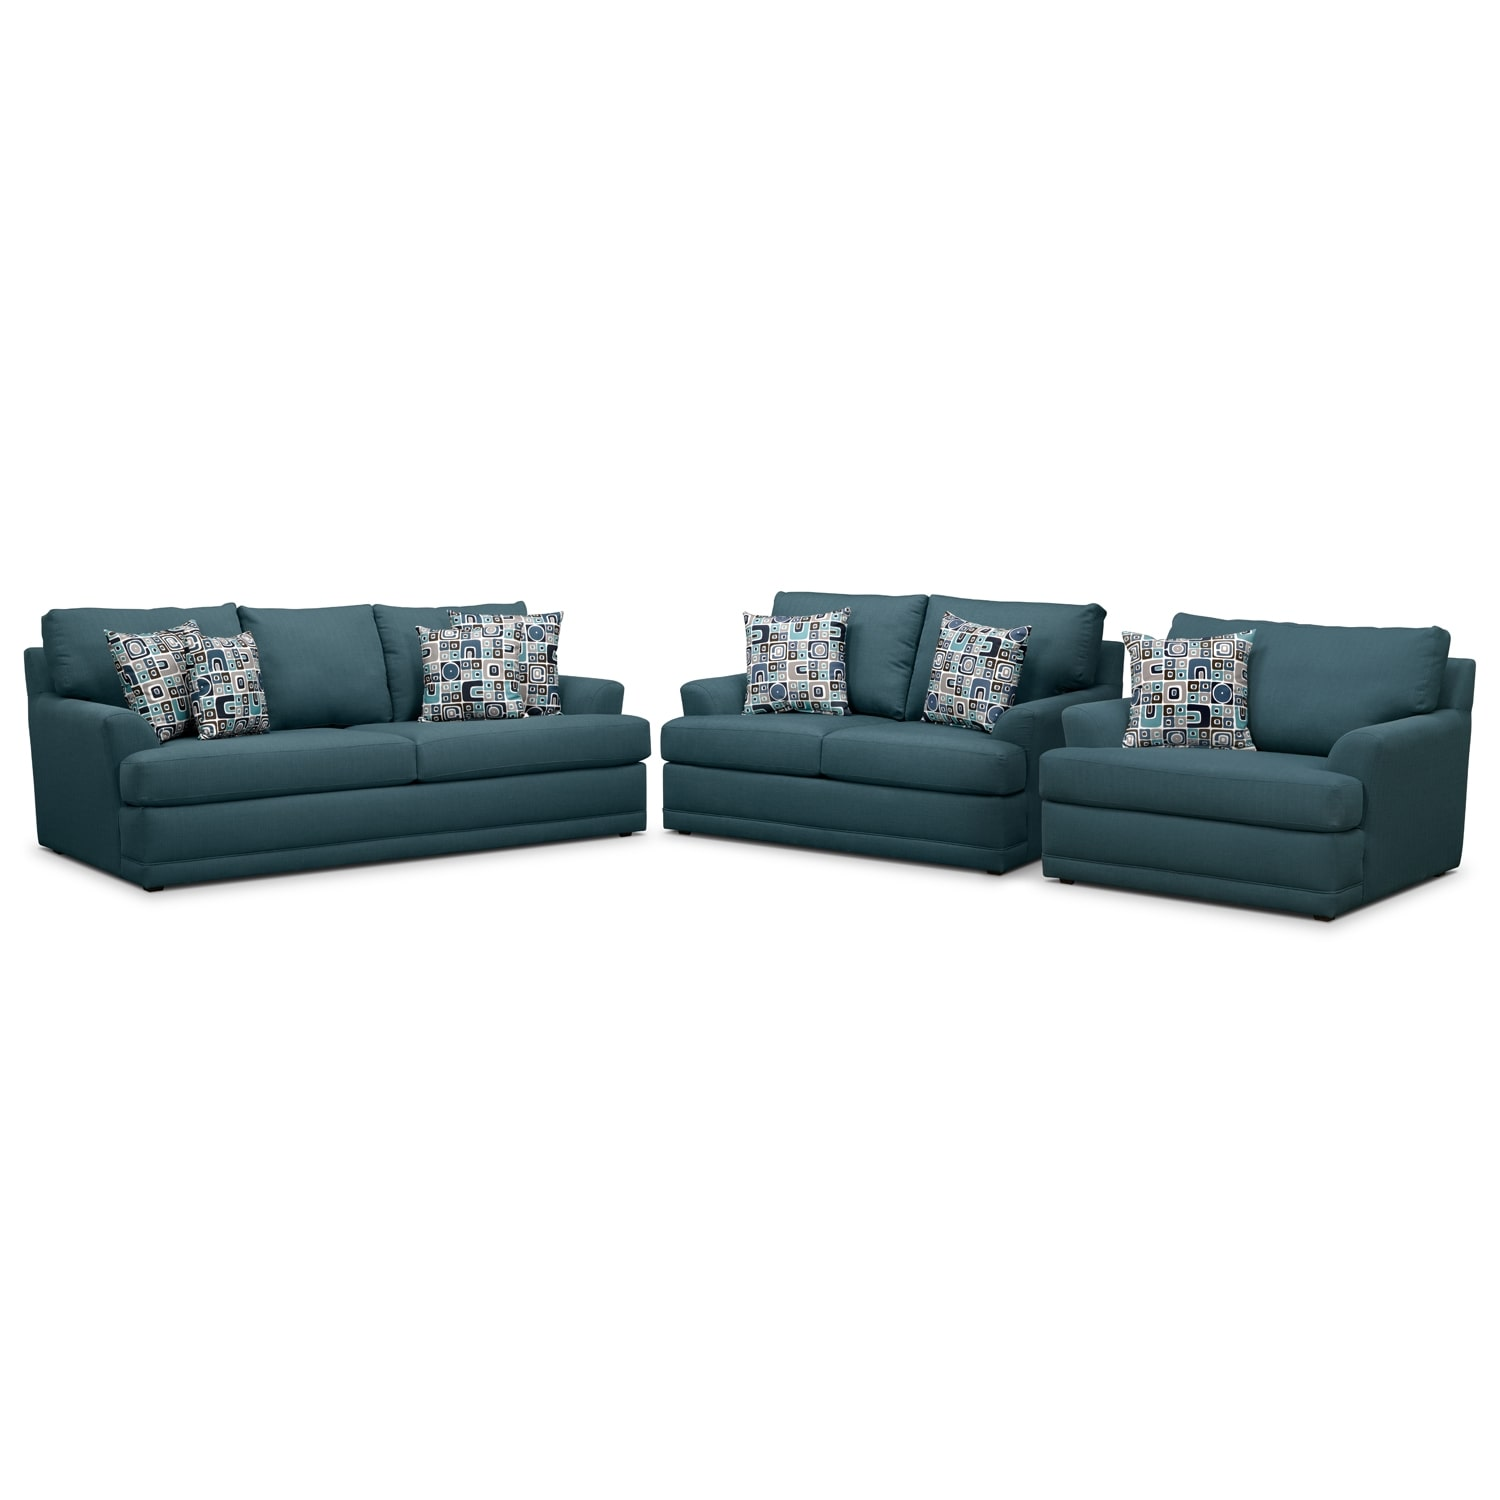 Living Room Furniture - Kismet Queen Innerspring Sleeper Sofa, Loveseat and Chair and a Half Set - Teal